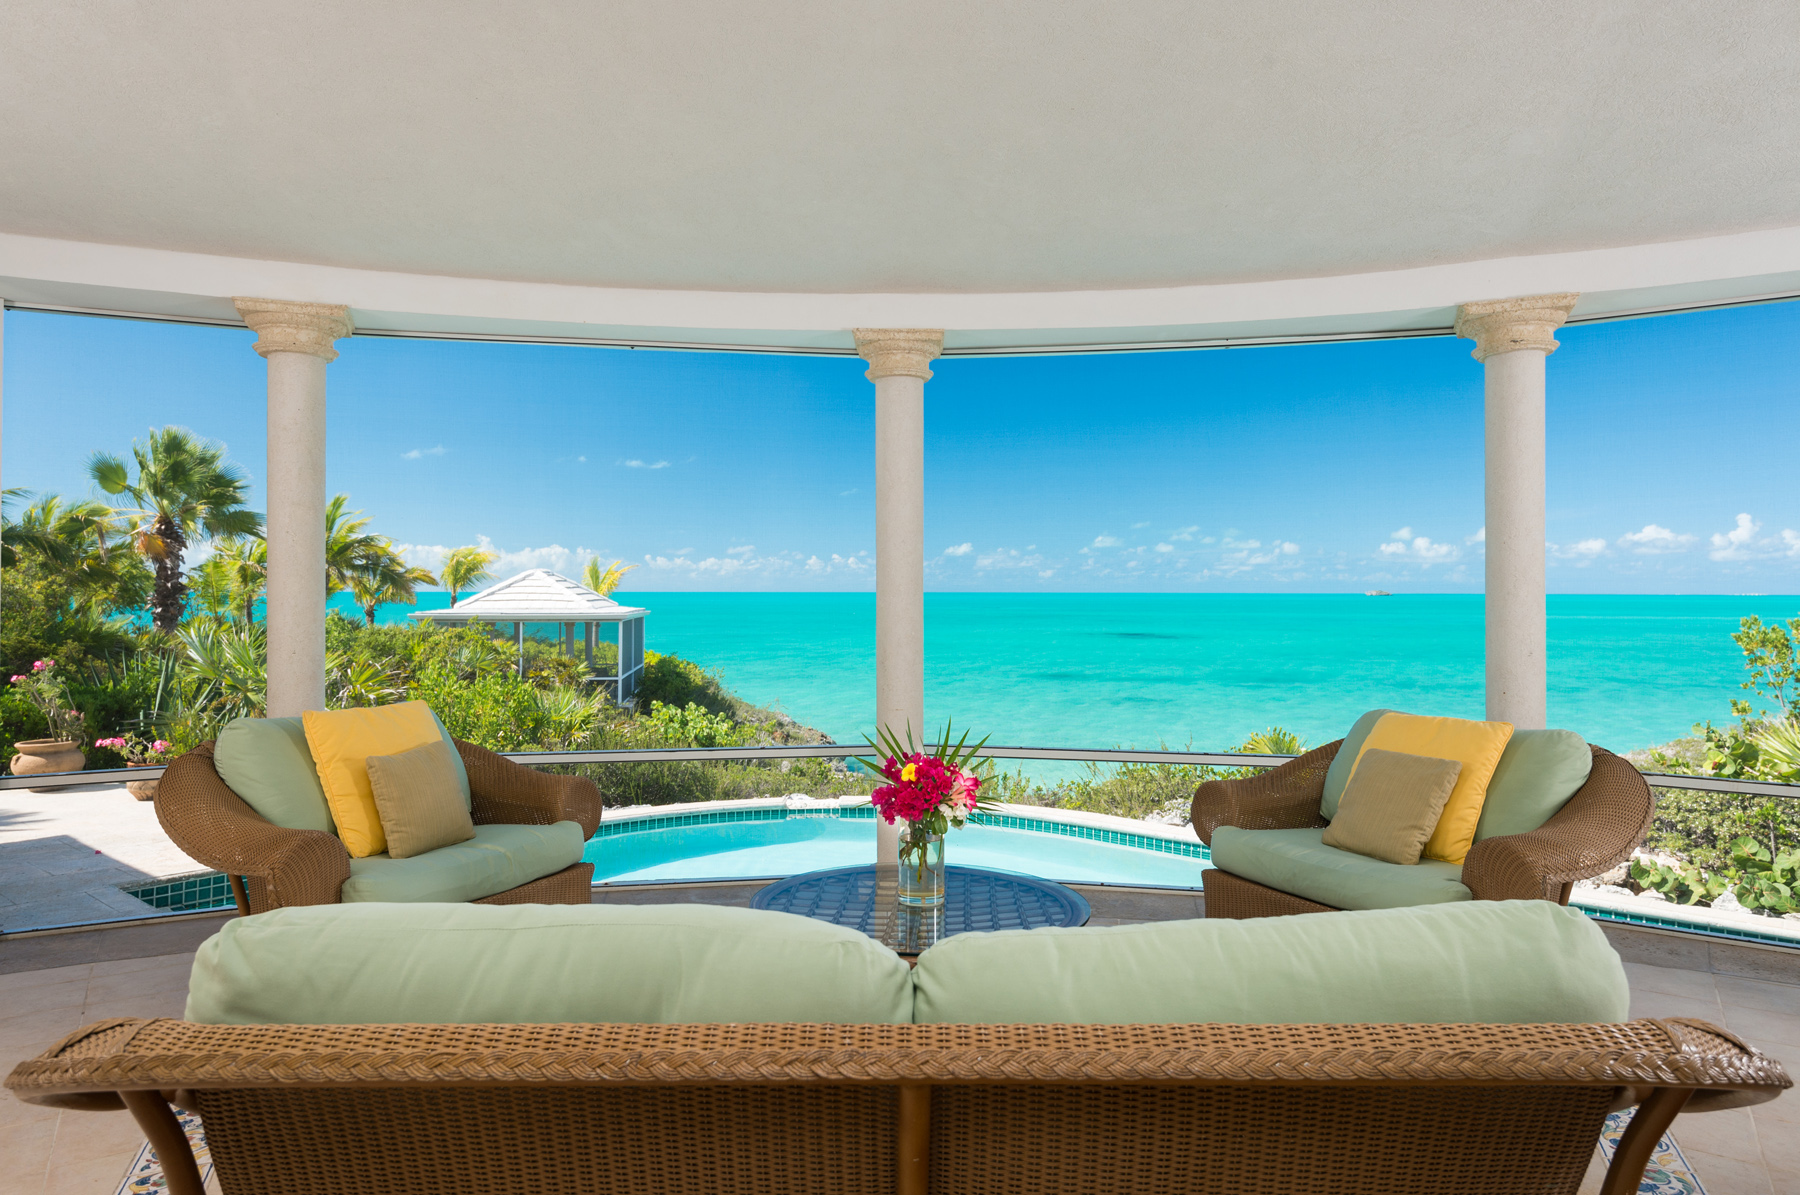 Single Family Home for Sale at South Seas Villa Chalk Sound, Turks And Caicos Islands